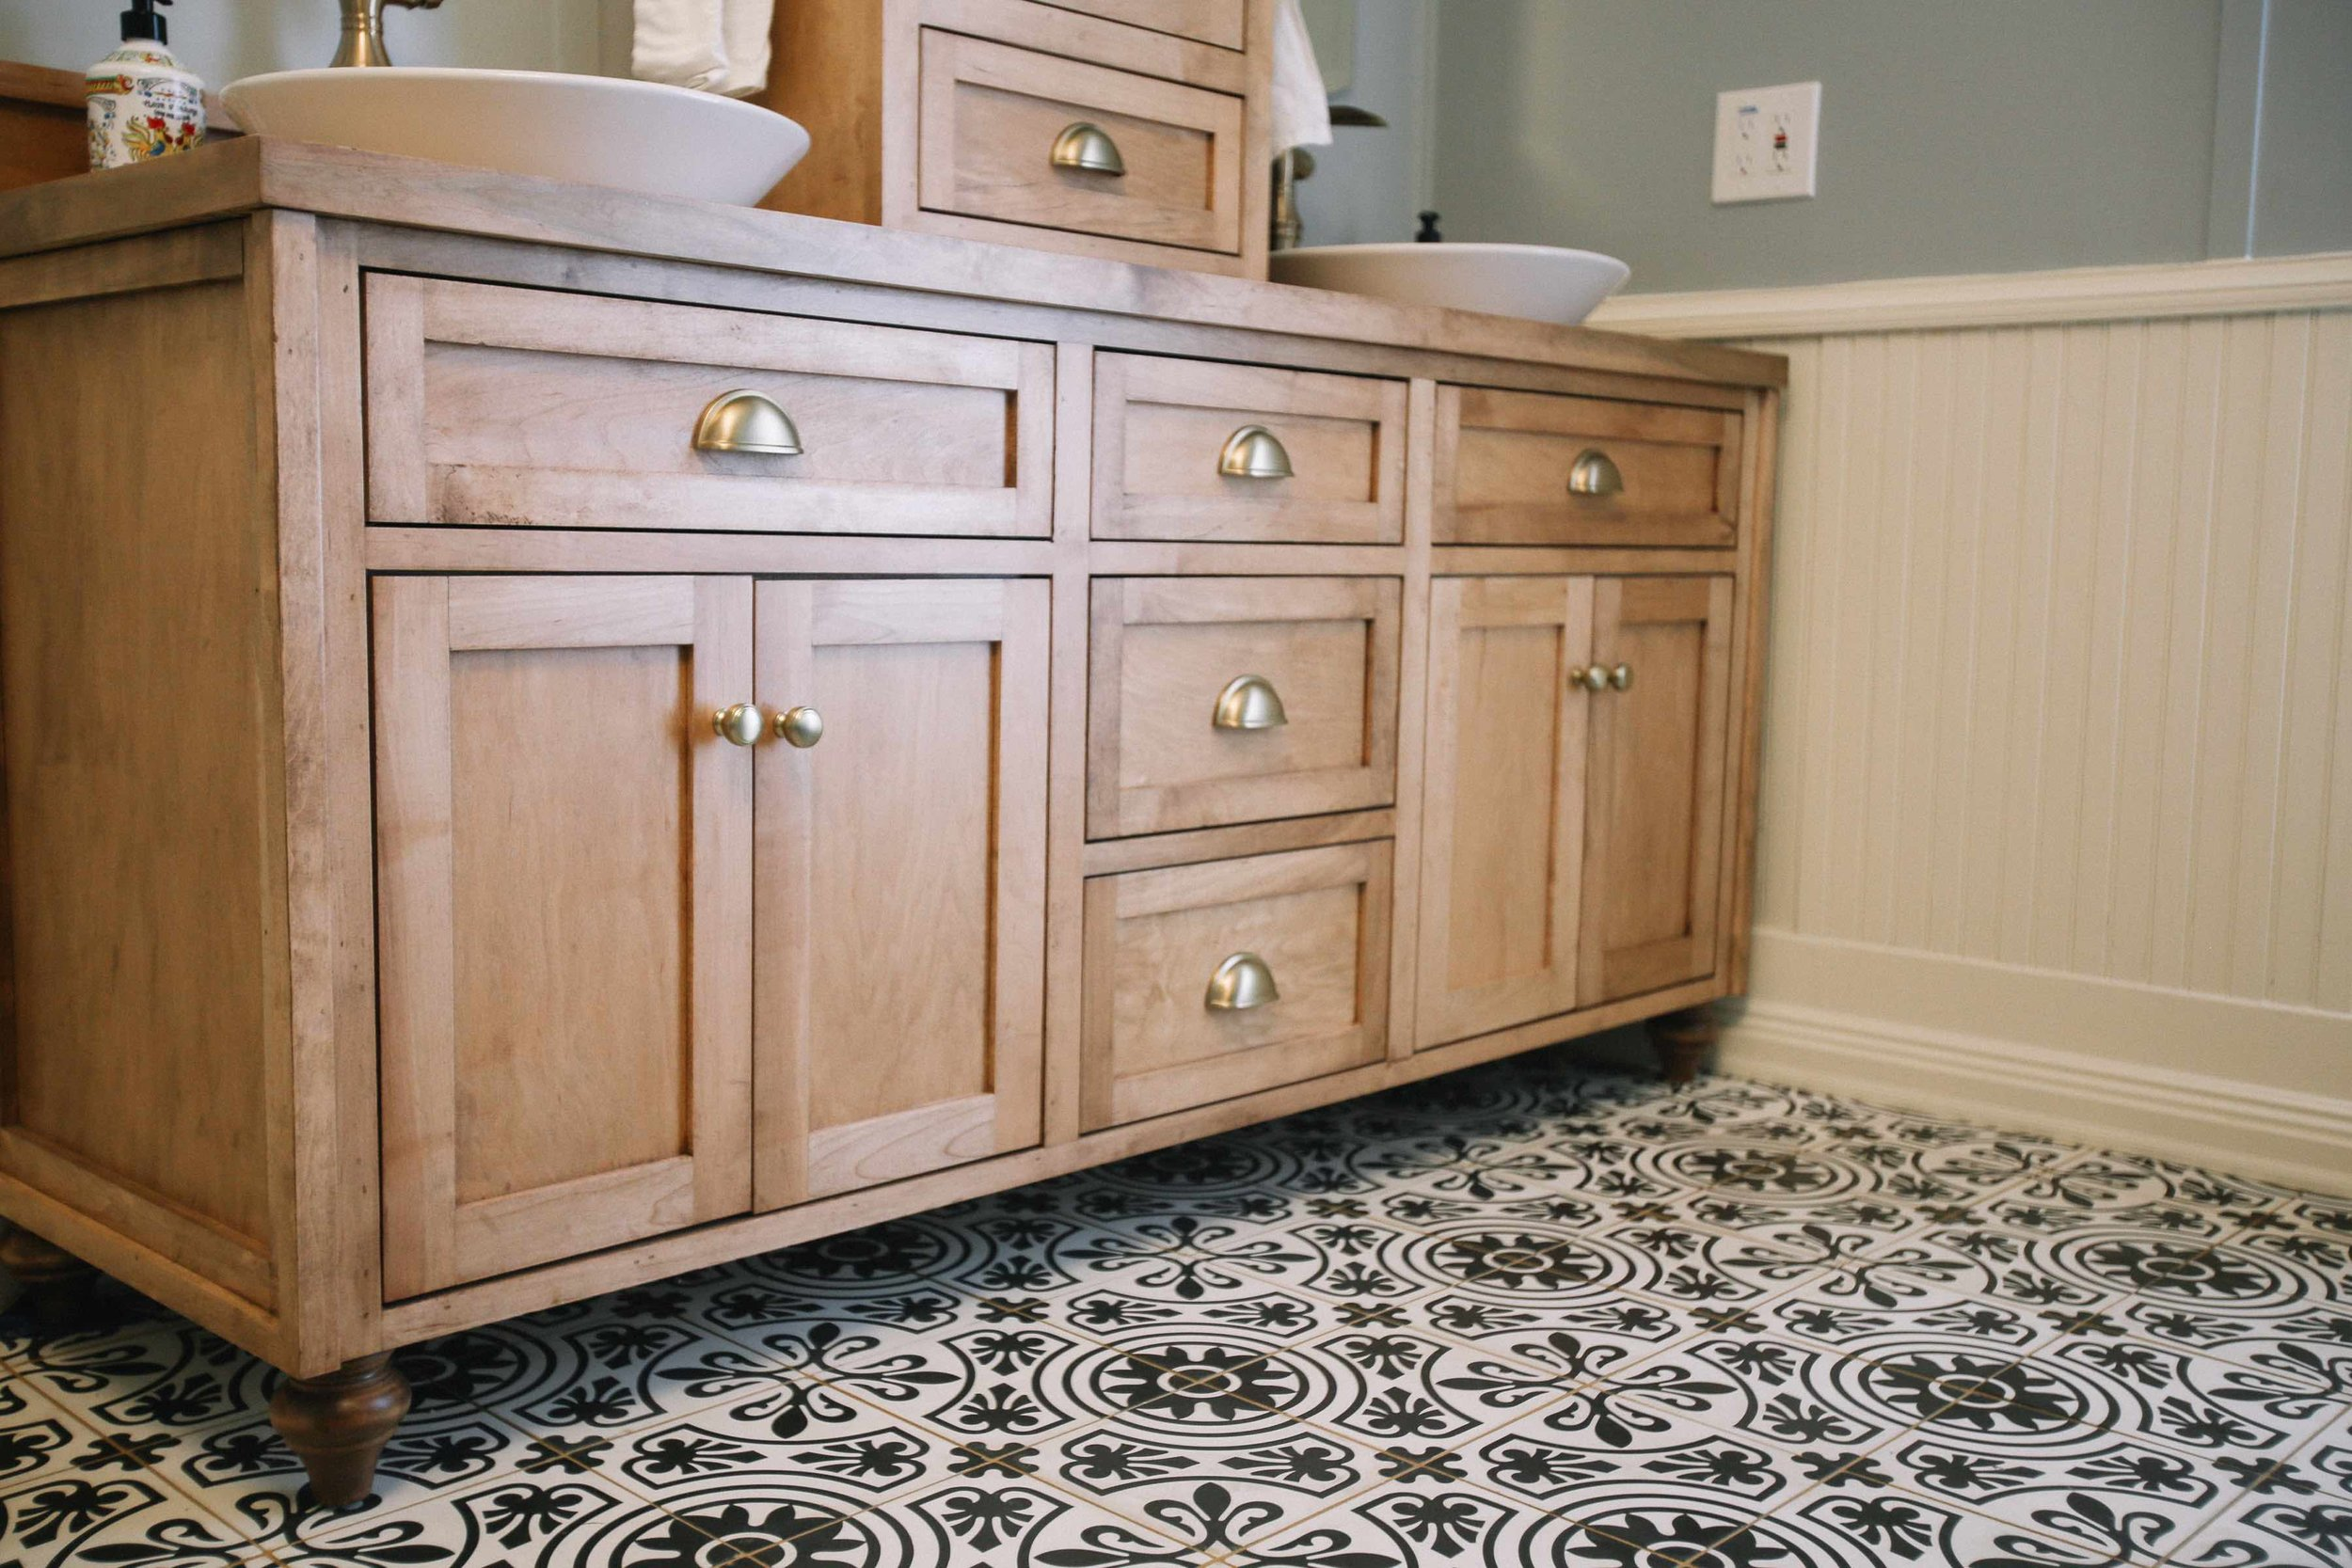 Wood-cabinets-with-brass-hardware.jpg